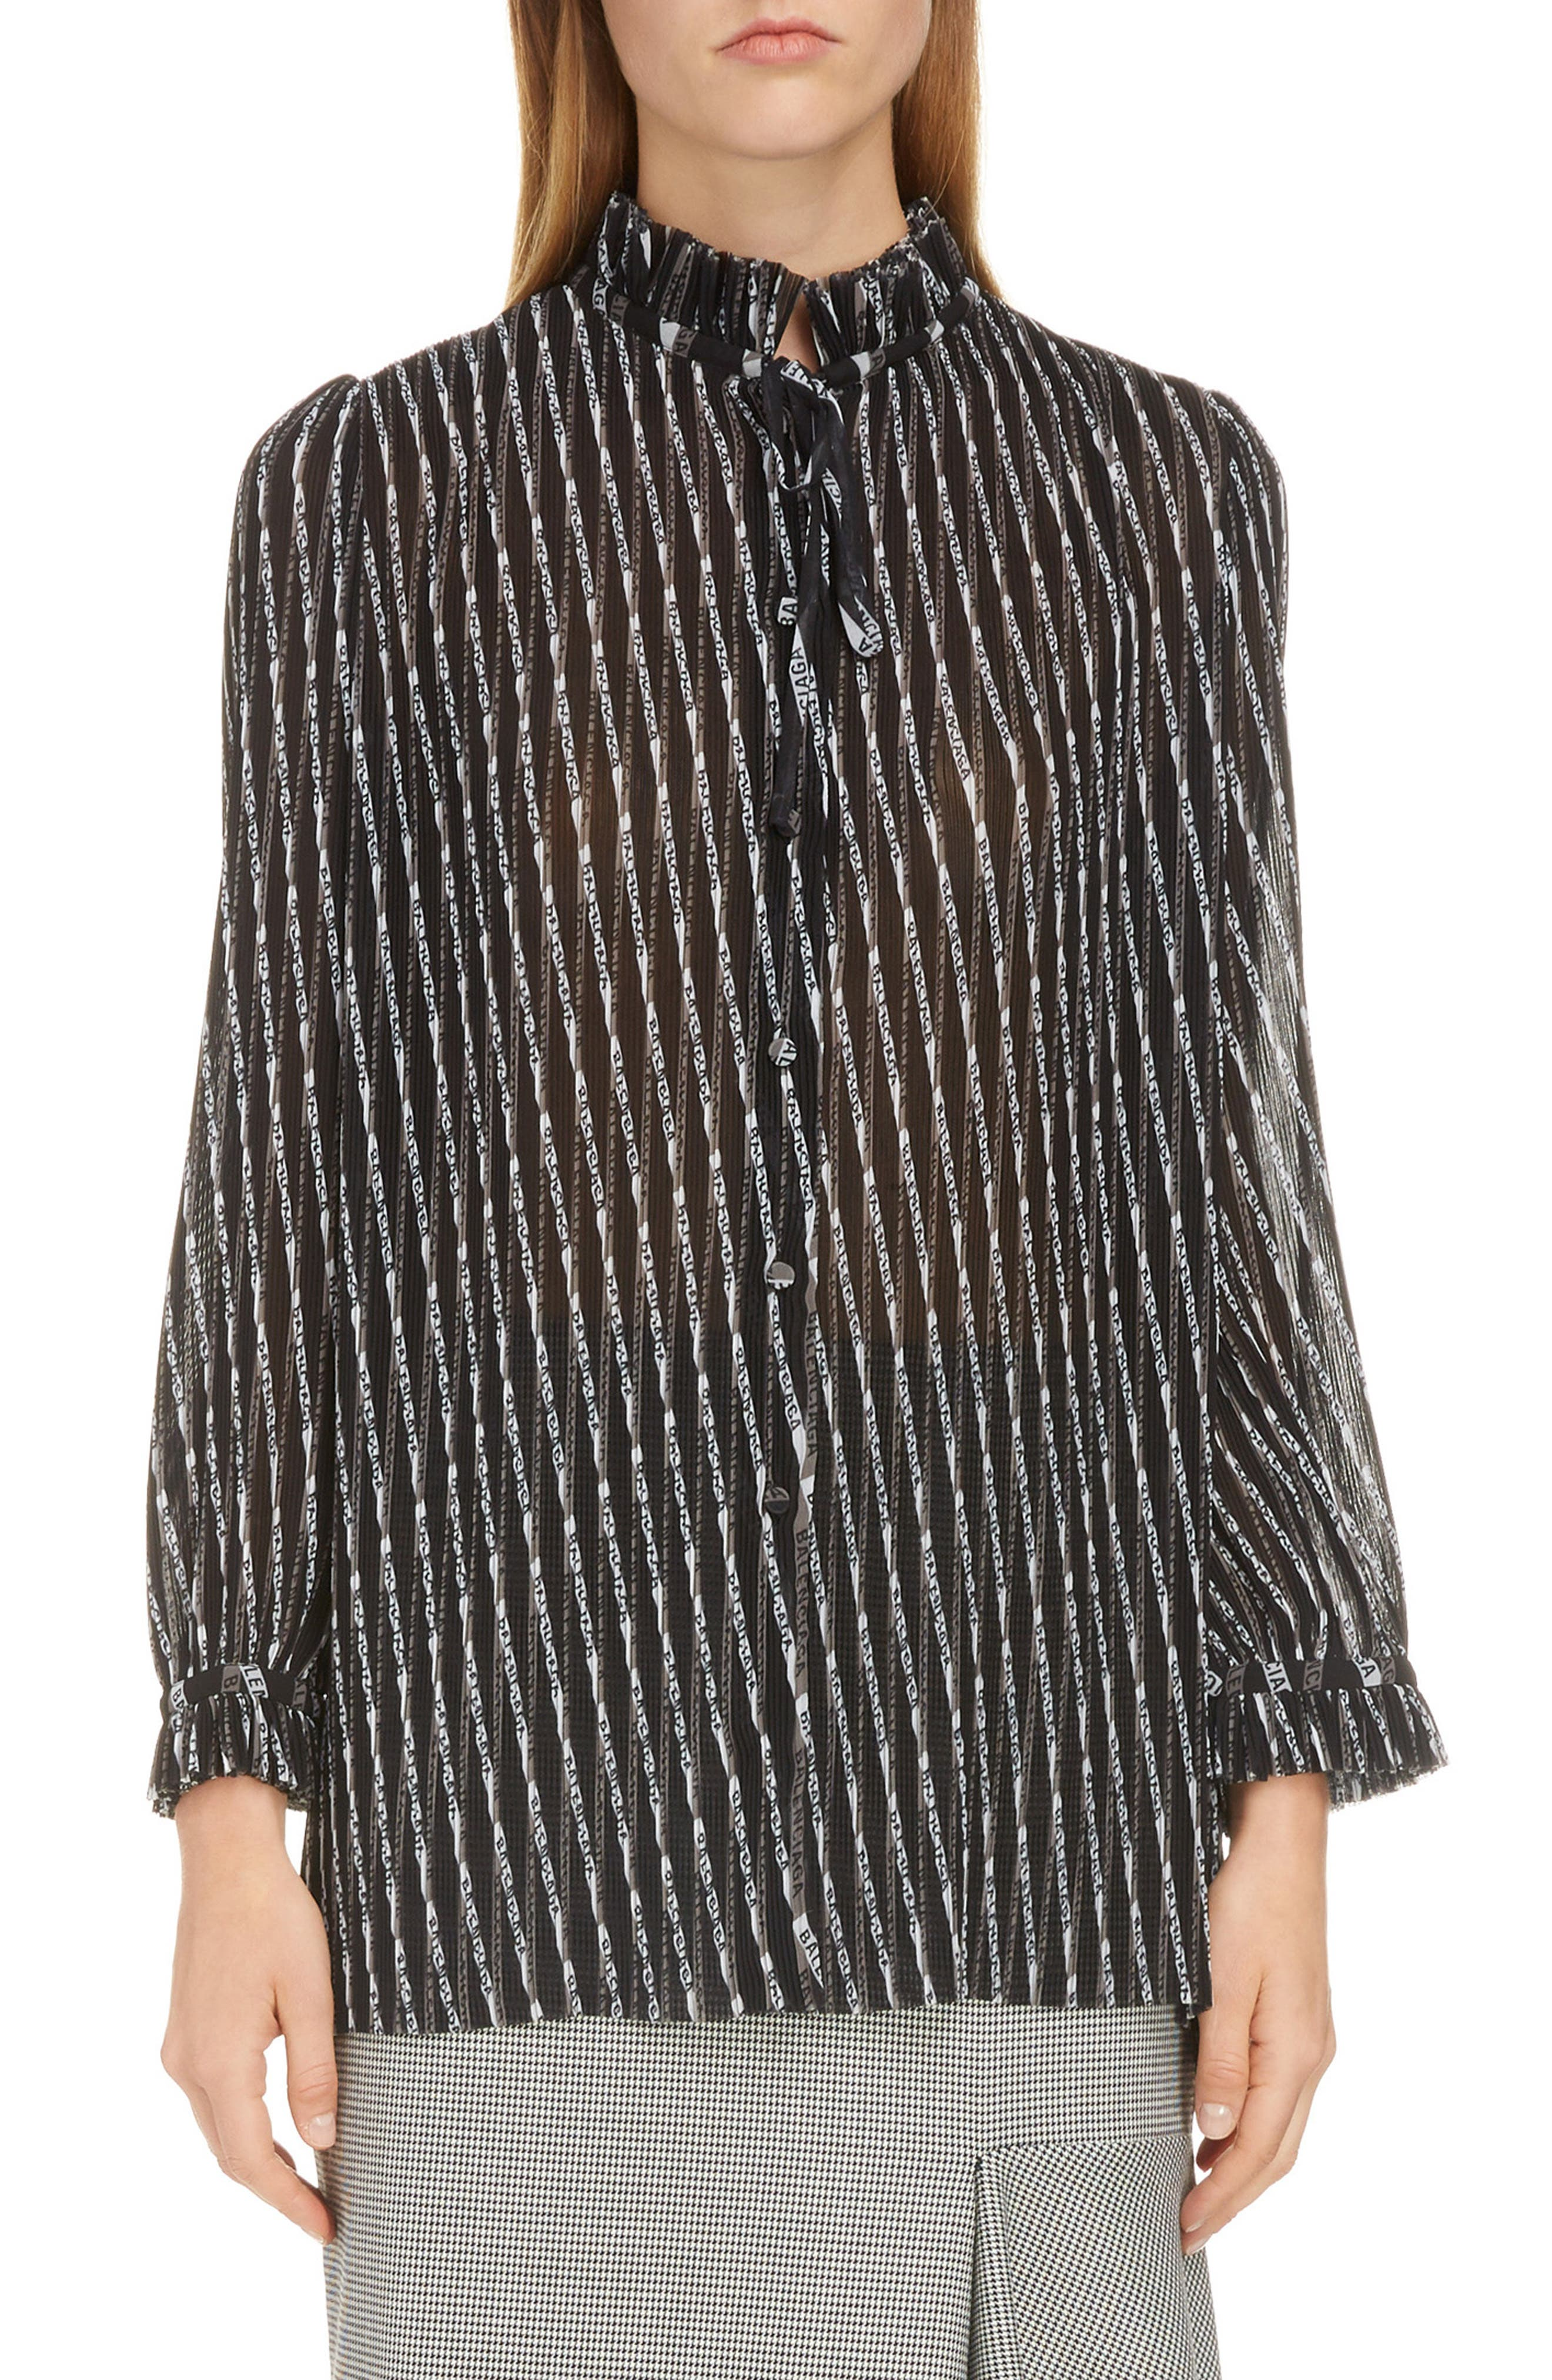 BALENCIAGA Monogram Print Silk Blouse, Main, color, GREY